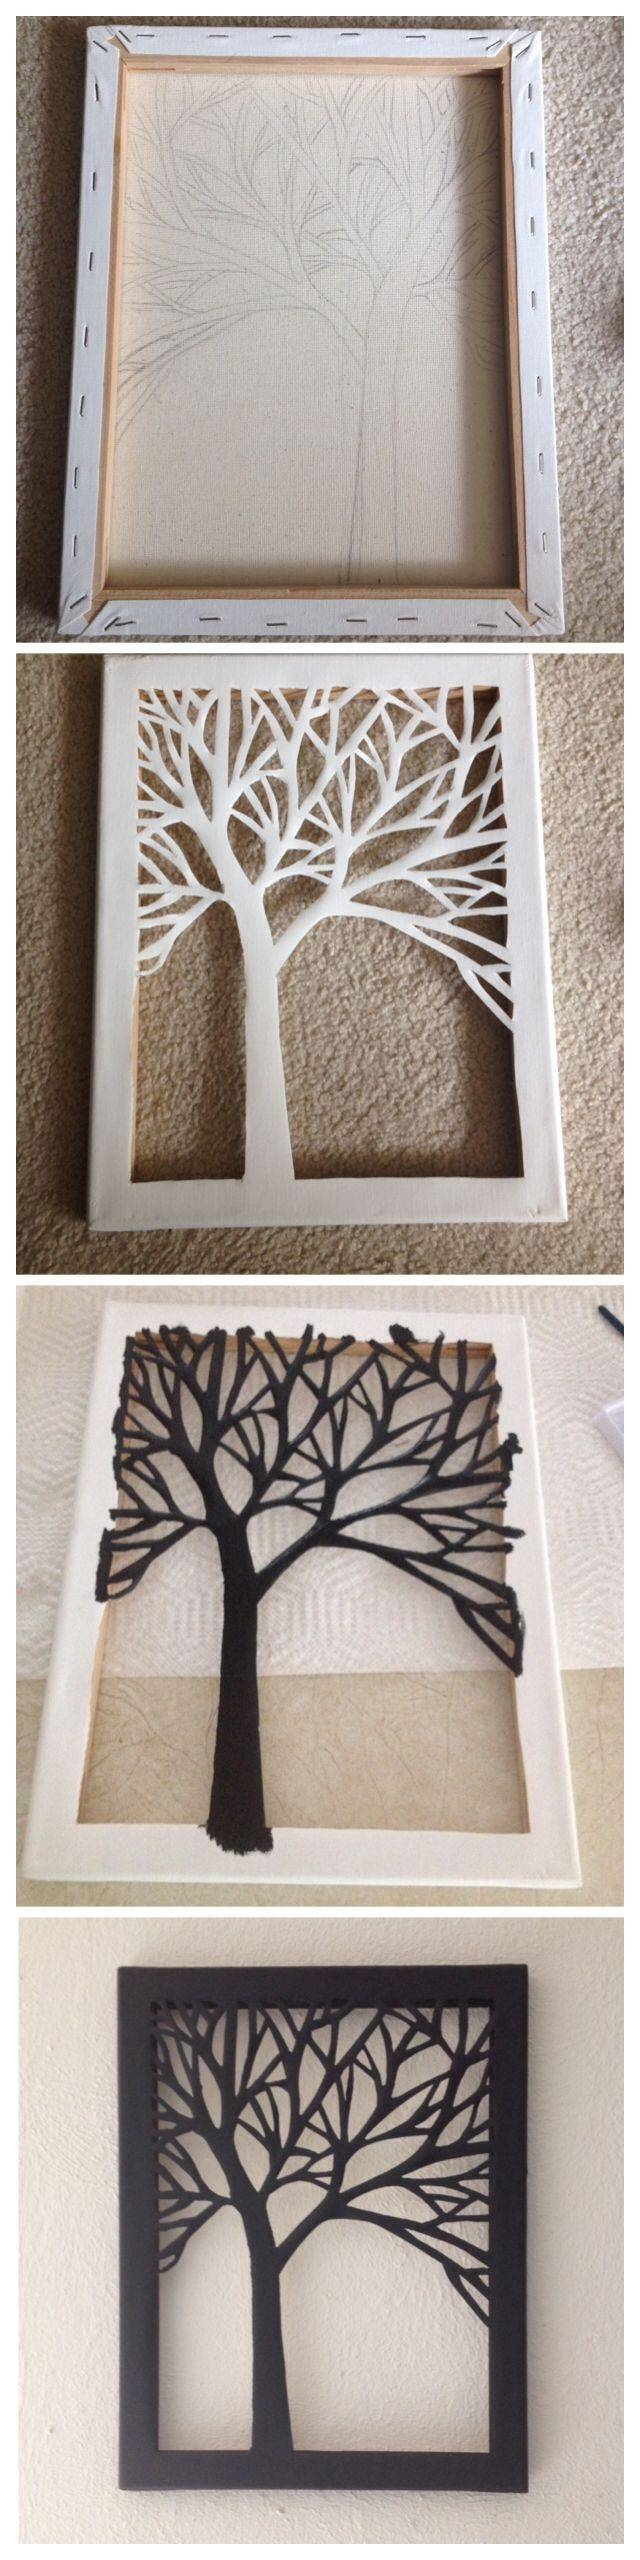 Best 25+ Canvas Art Ideas On Pinterest | Diy Canvas Art, Tree Intended For Most Popular Diy Pinterest Canvas Art (View 19 of 25)